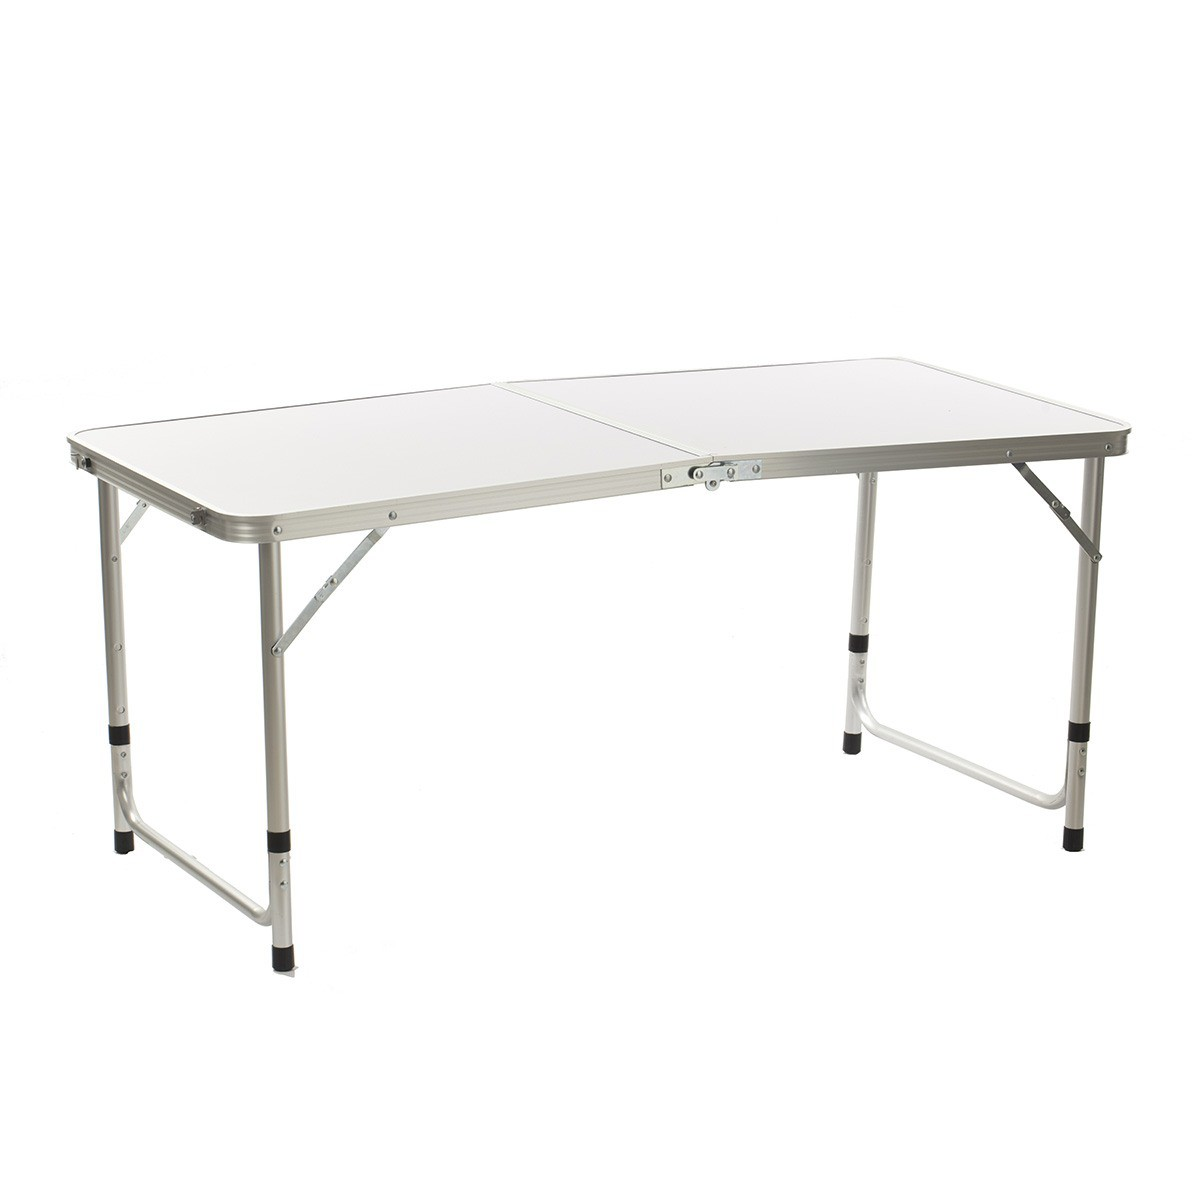 Table Aluminium Pliante Table Pliante Aluminium Grise